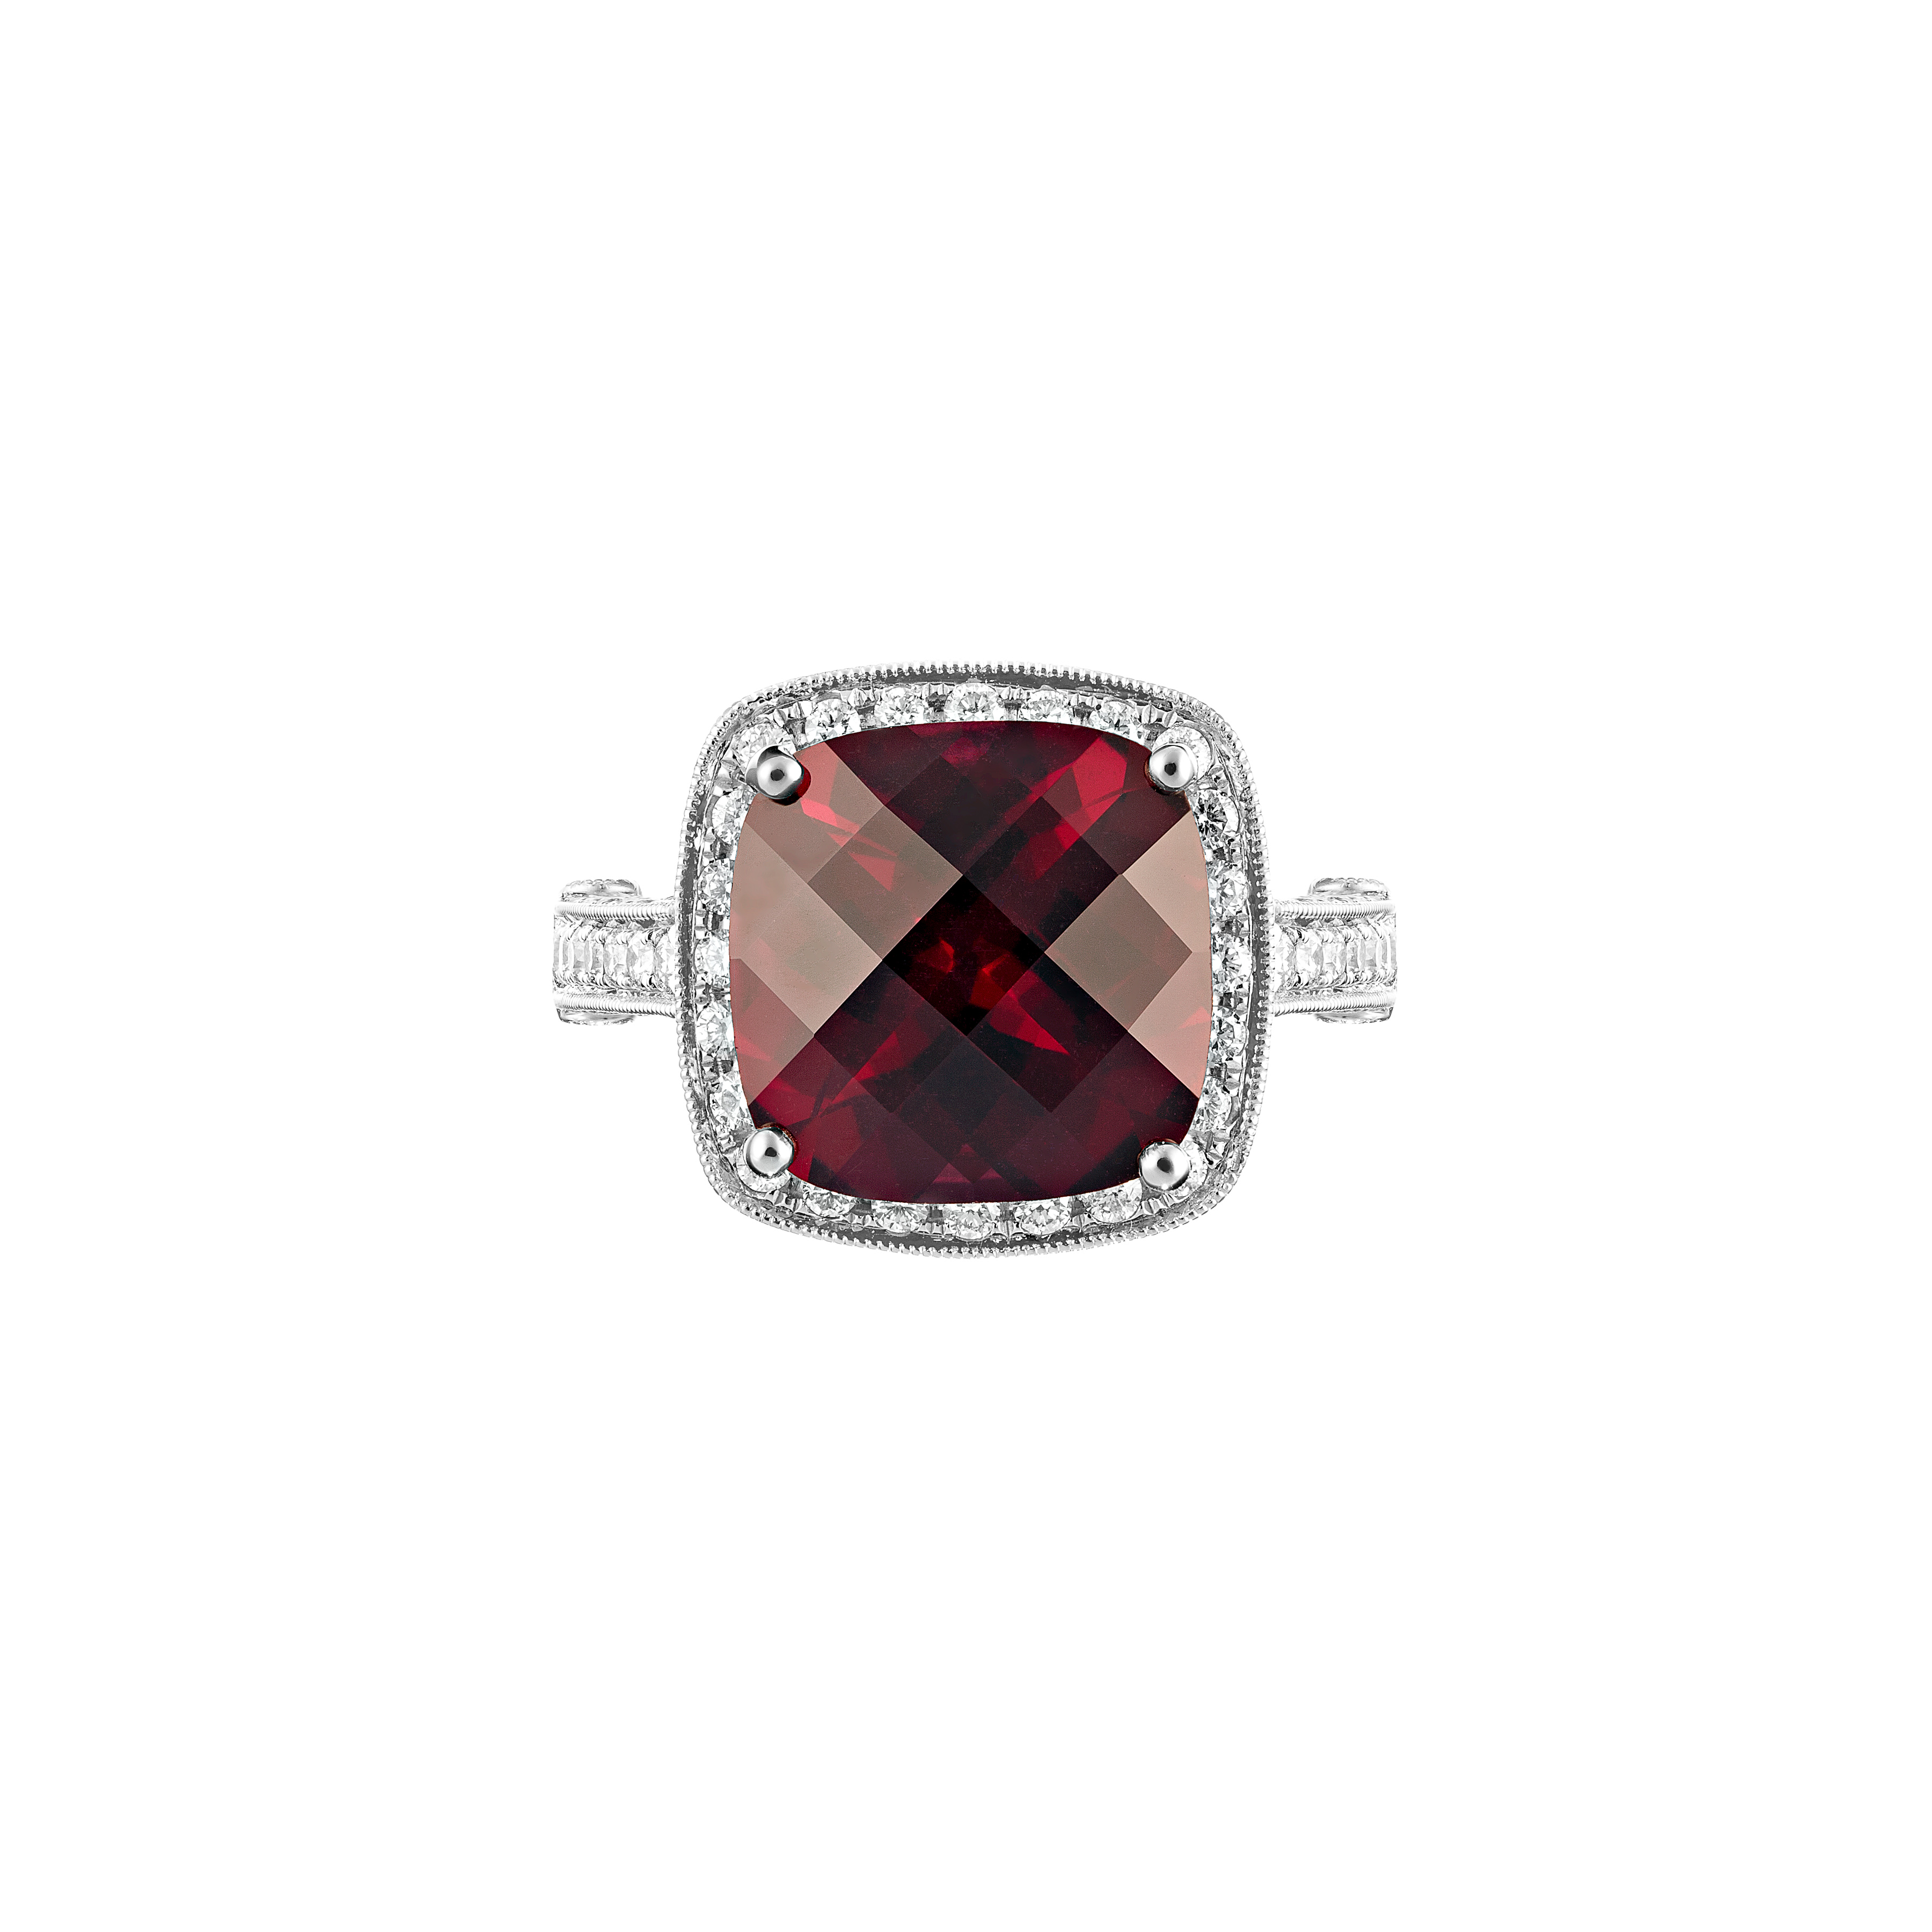 african red garnet and diamond ring in 18ct w/g(top view)